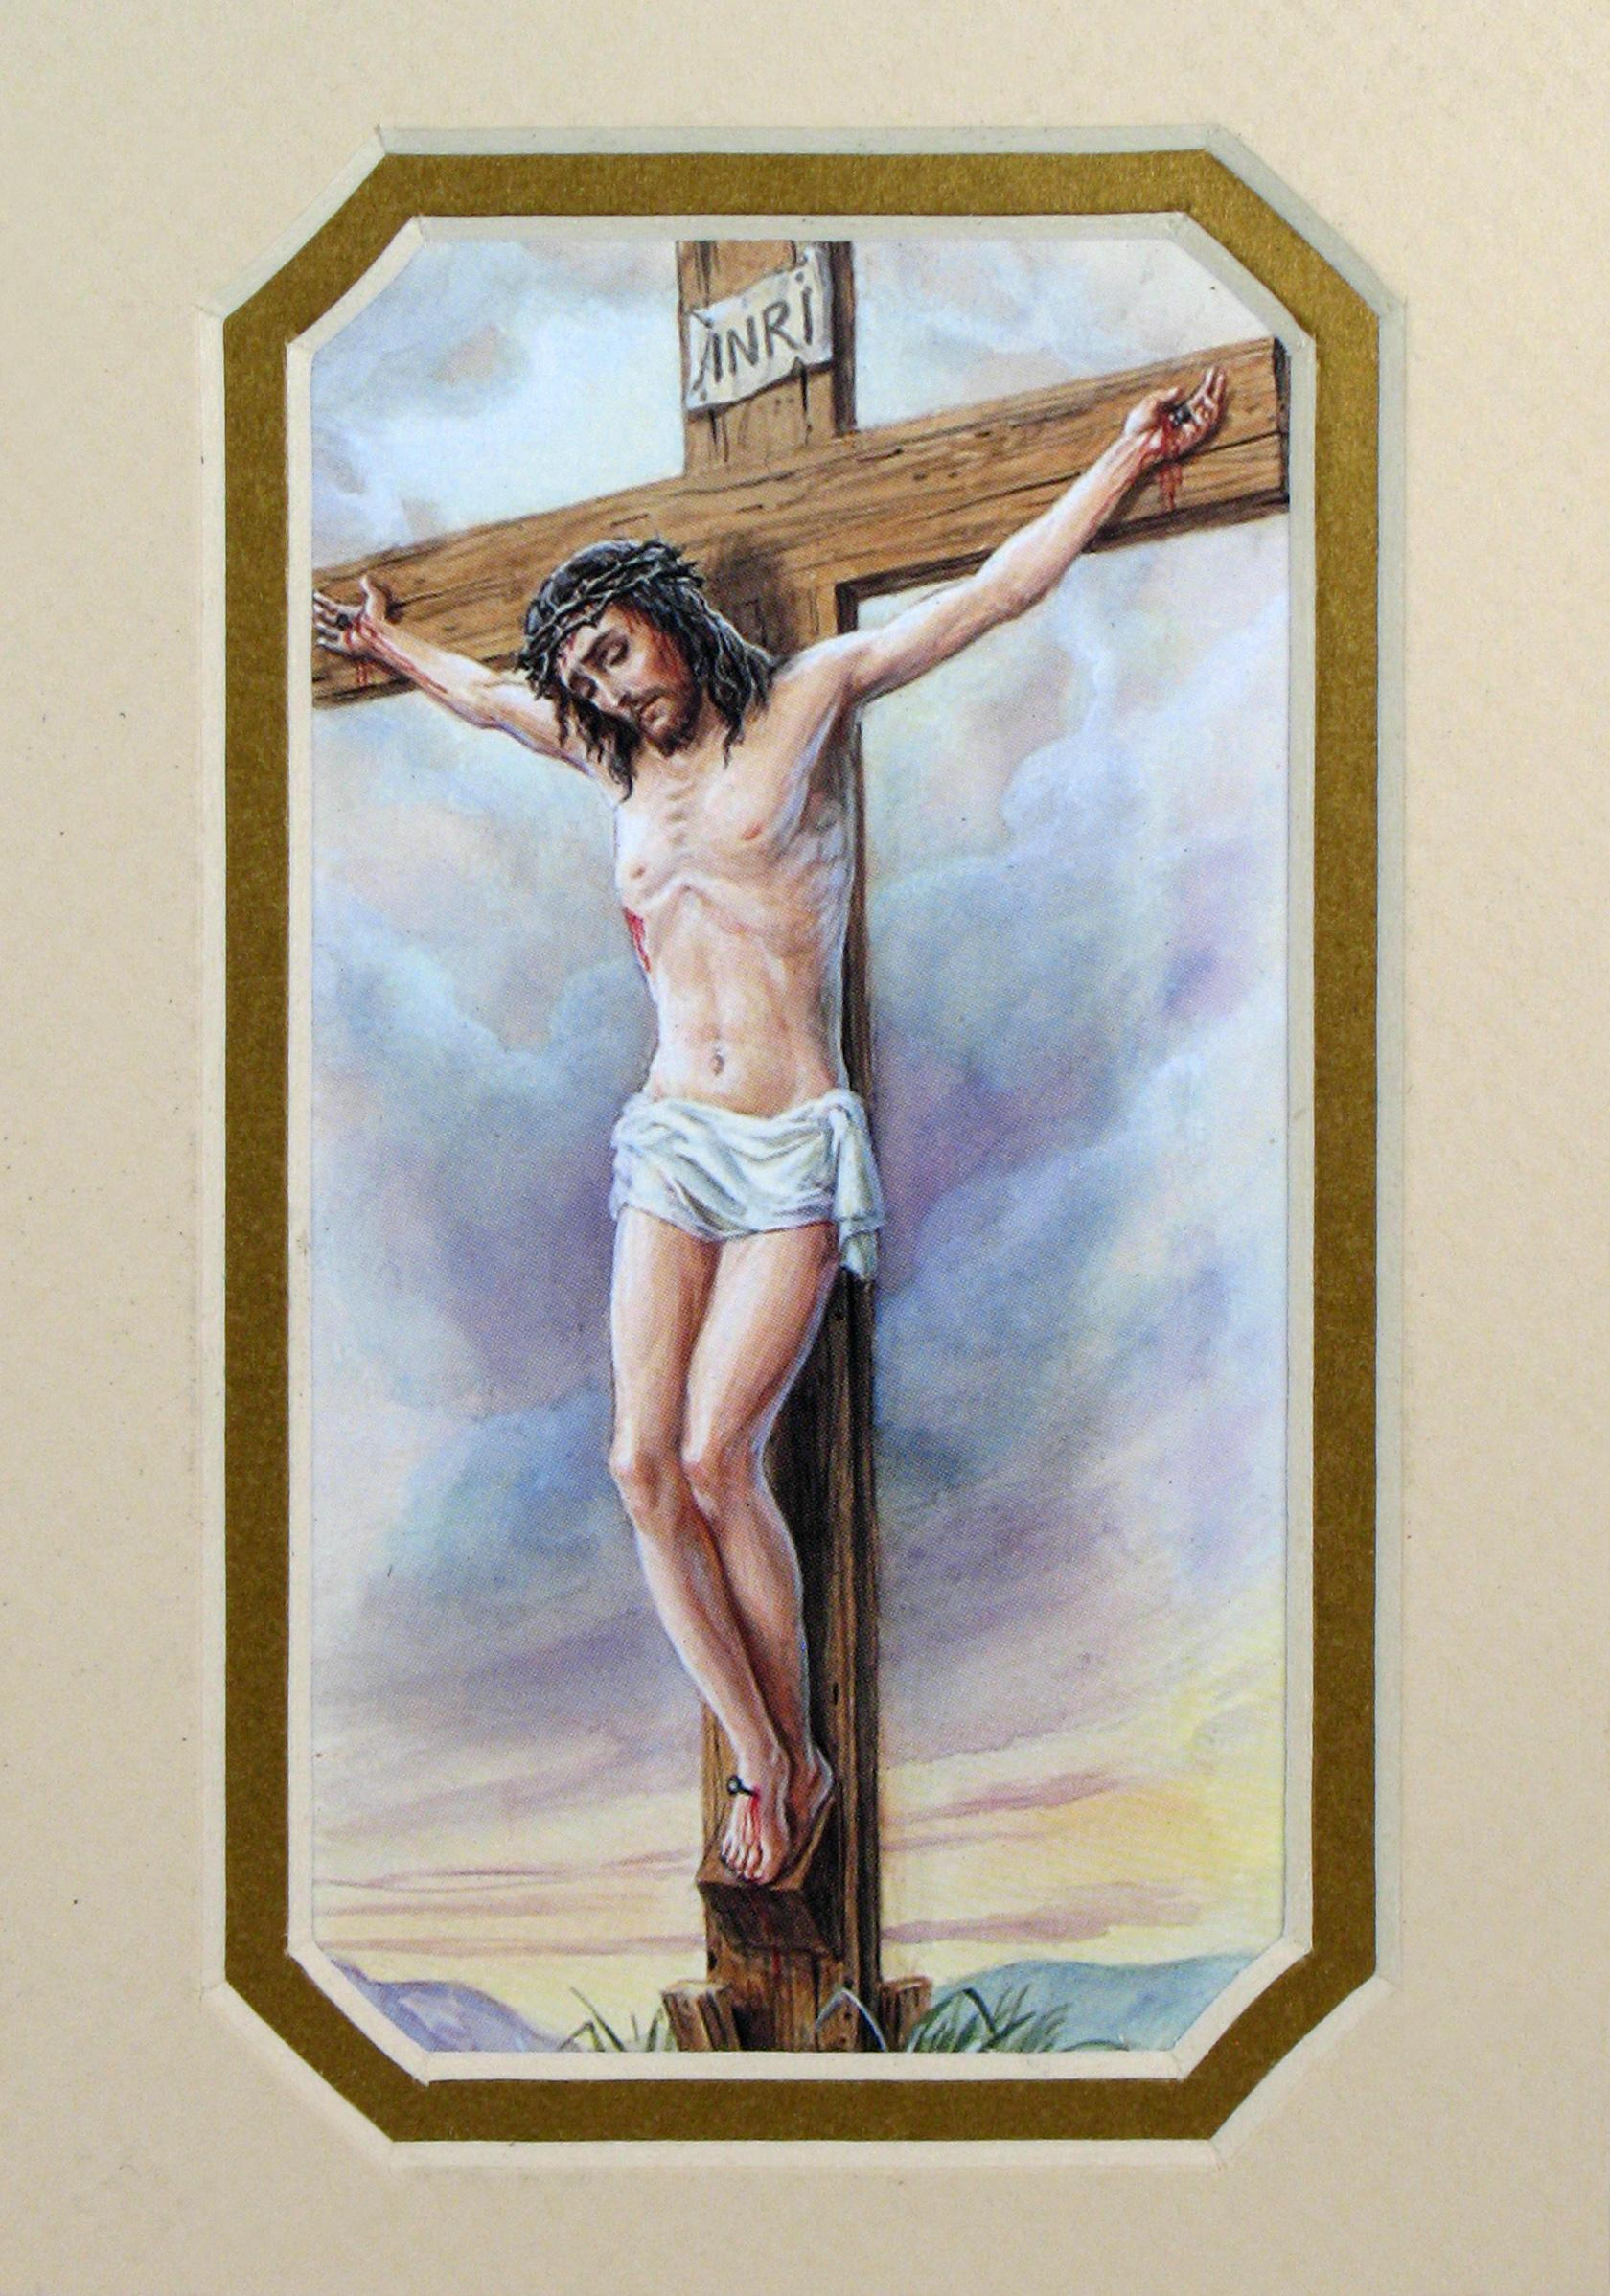 Crucification 3x5 Prayerful Mat #35MAT-CRX